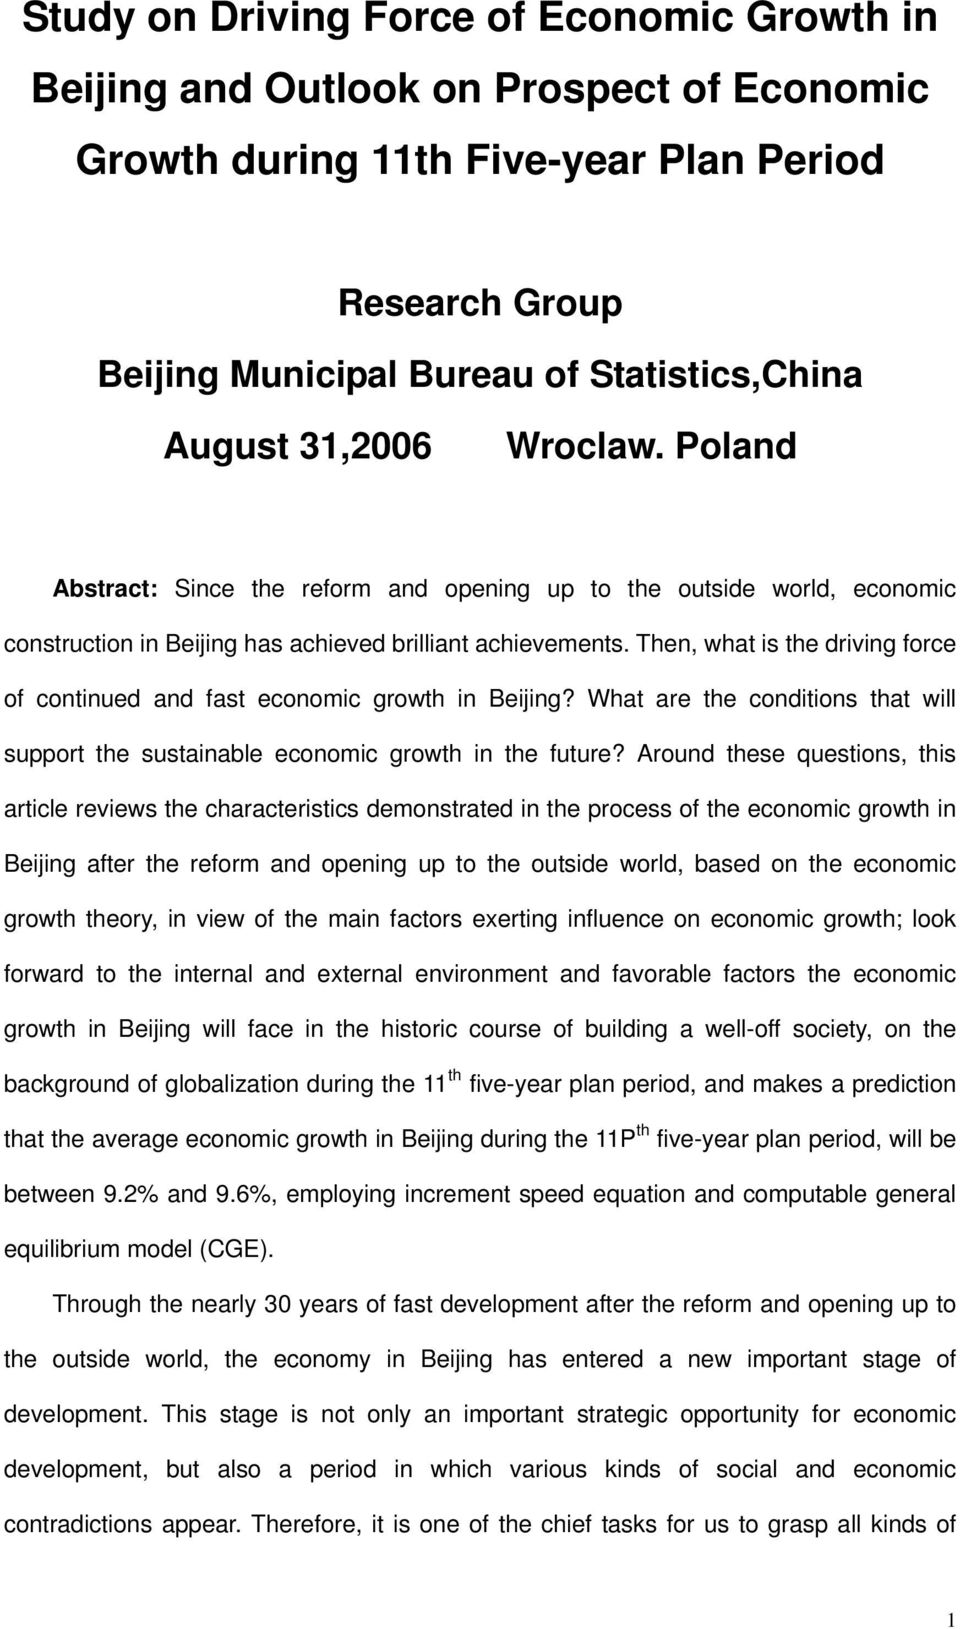 Then, what is the driving force of continued and fast economic growth in Beijing? What are the conditions that will support the sustainable economic growth in the future?